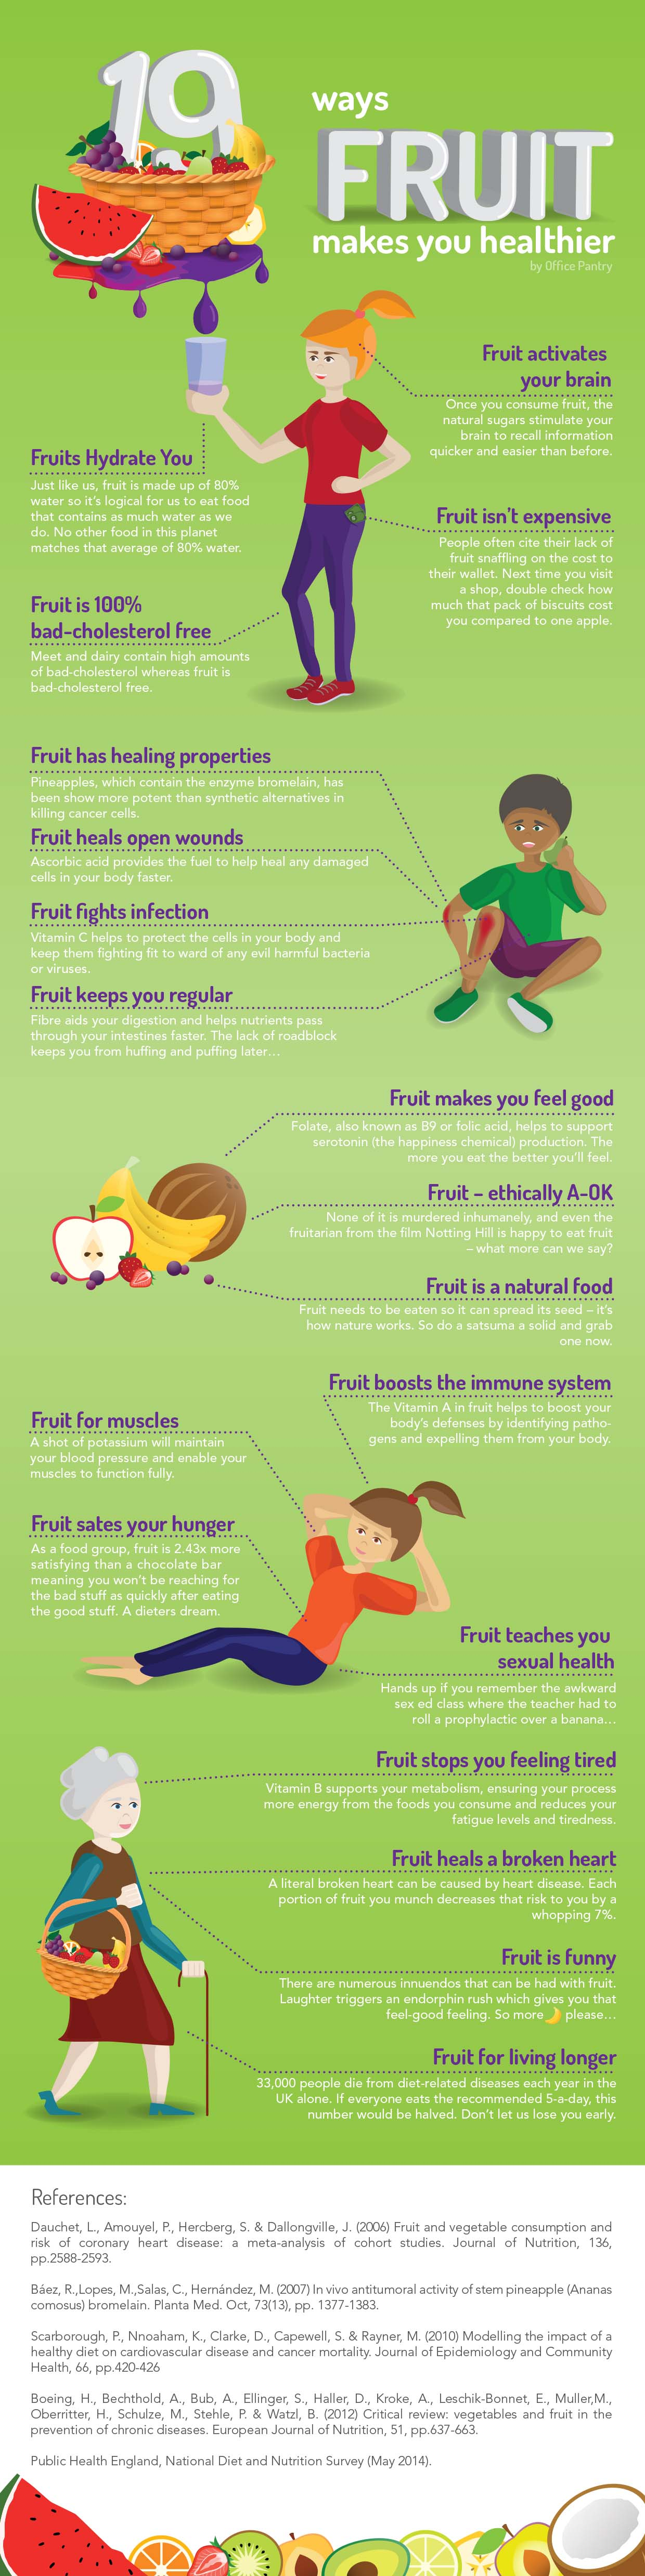 19 Ways Fruit Makes You Healthier